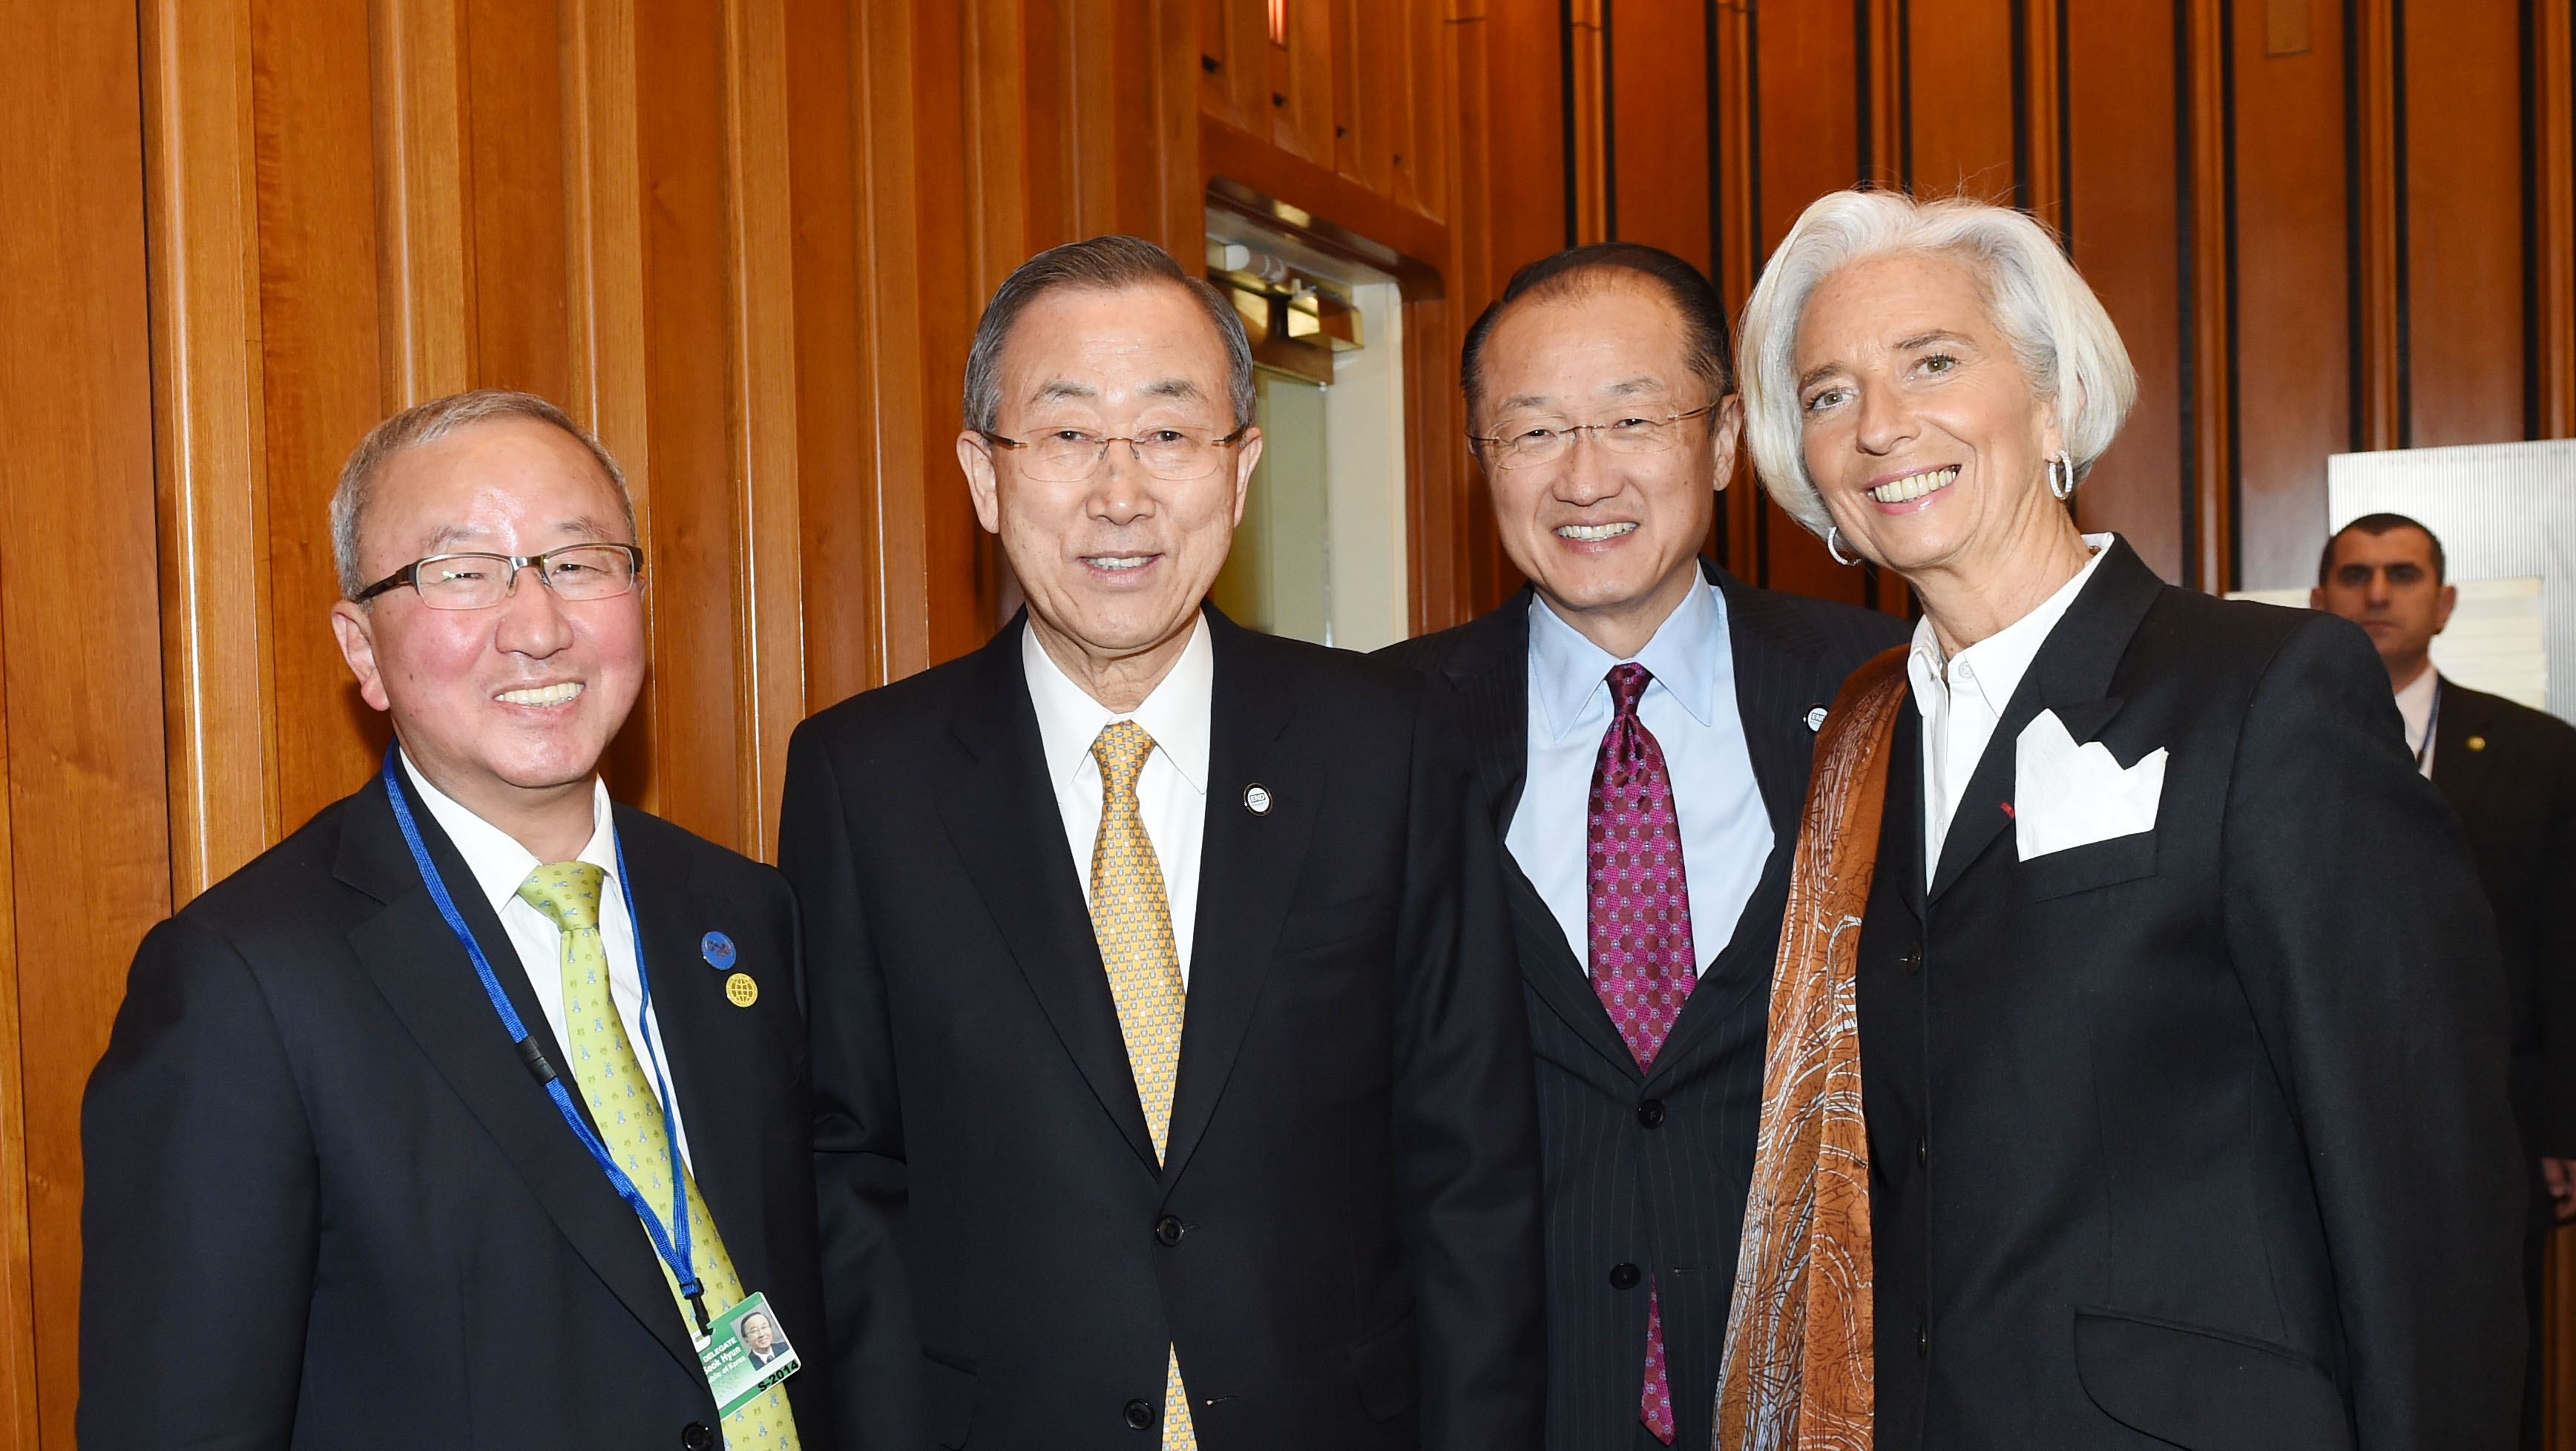 Deputy Prime Minister Hyun poses with leaders from the UN, WB and IMF